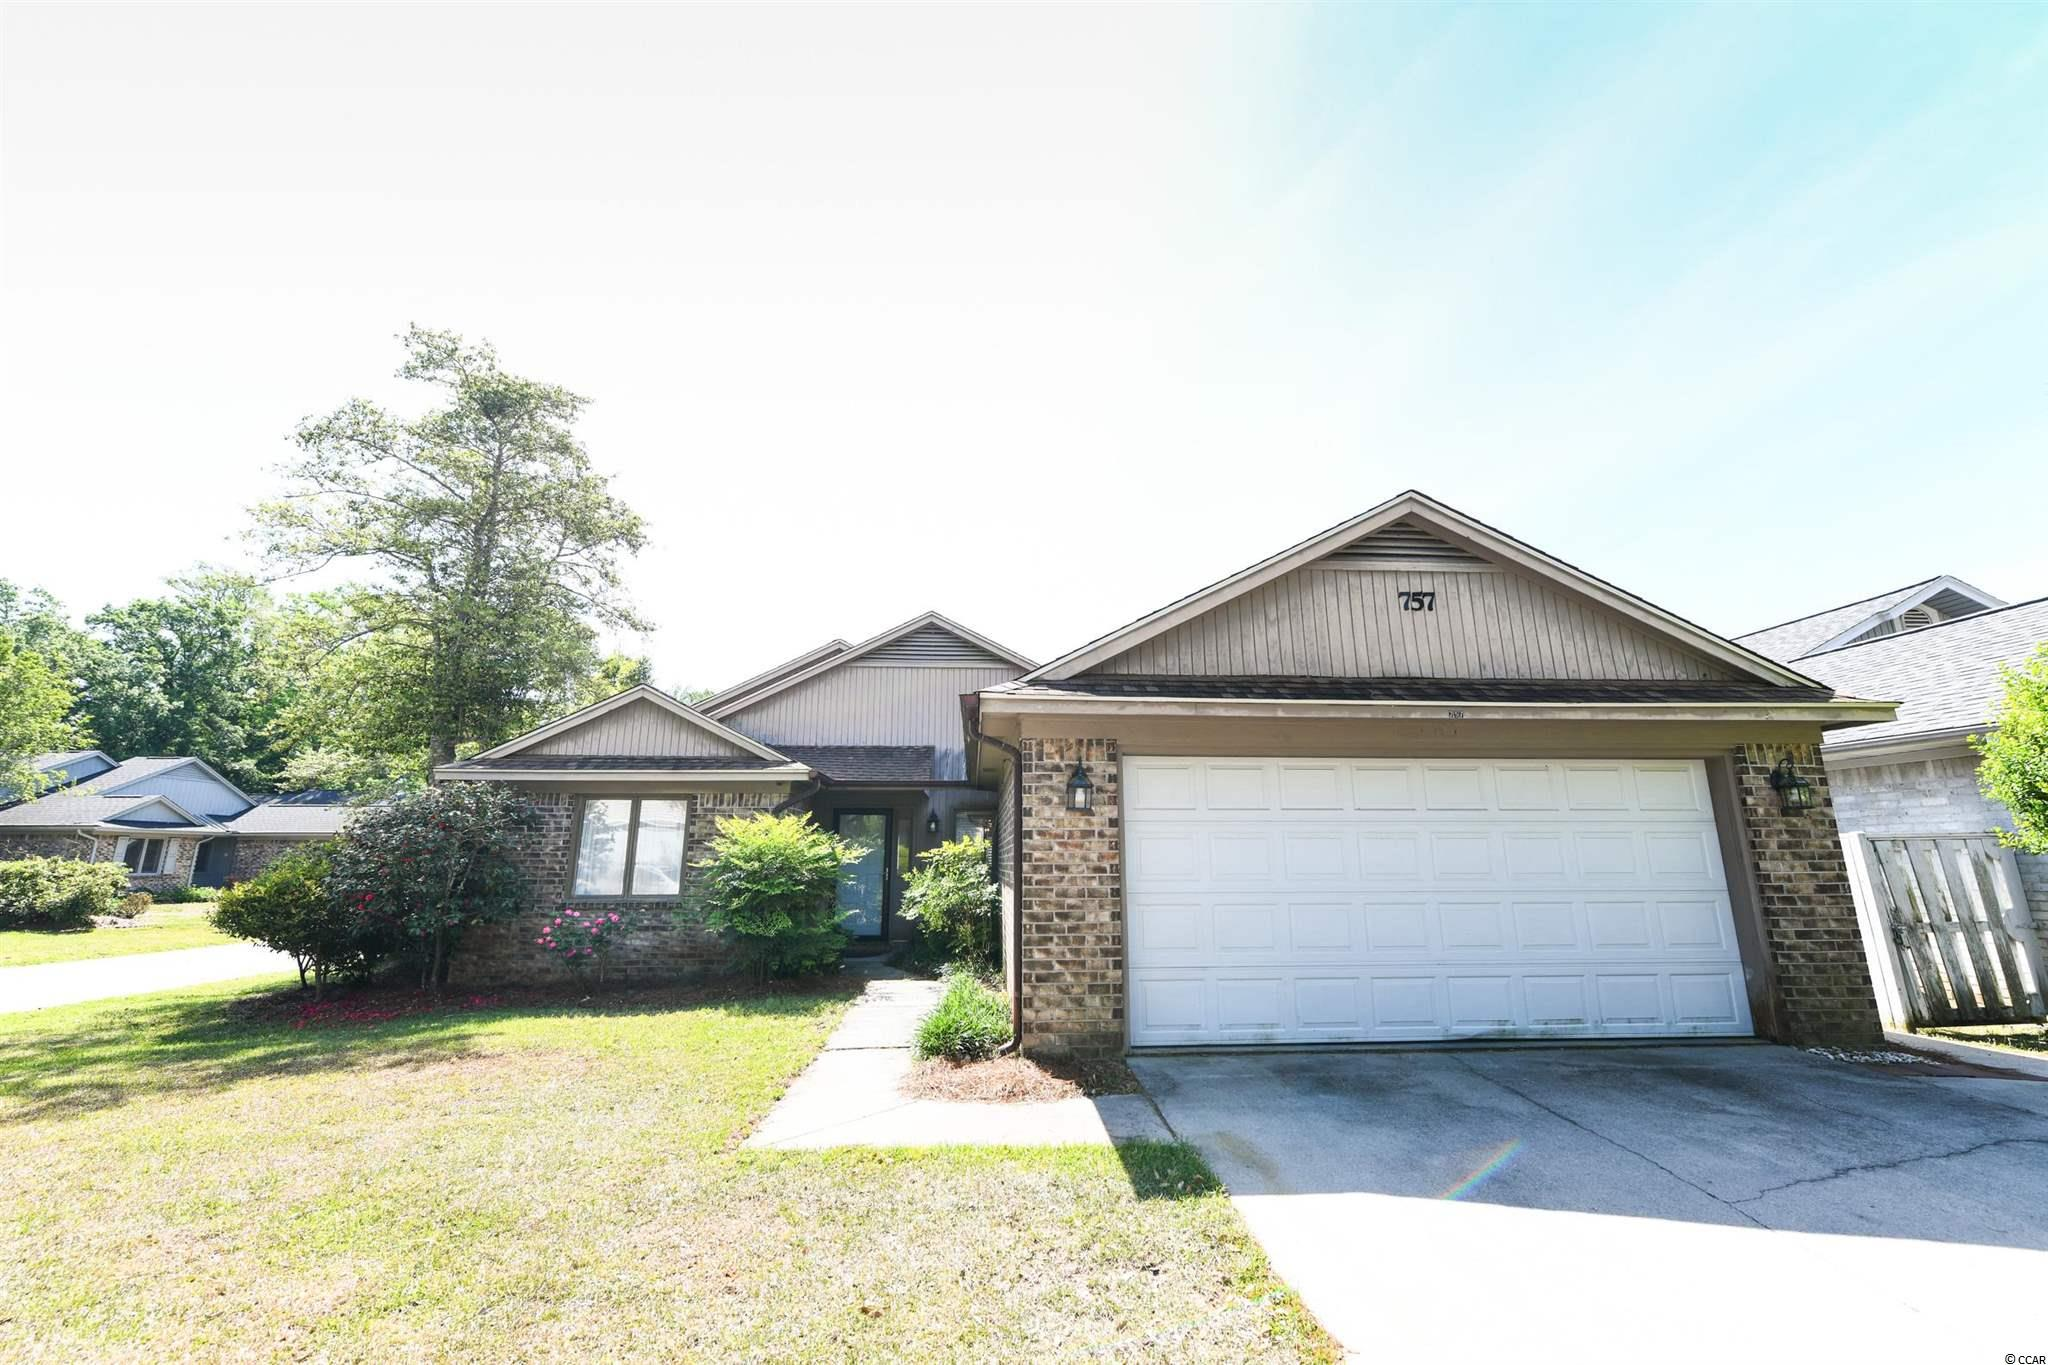 This 3 bedroom home is completely renovated featuring an open concept main living area, fireplace, and screened in porch. Located in the desirable Mt. Gilead neighborhood, this property is close to everything!  Minutes away from the ocean, Murrells Inlet's Marsh walk, and the water way with ocean access! Schedule a showing today!